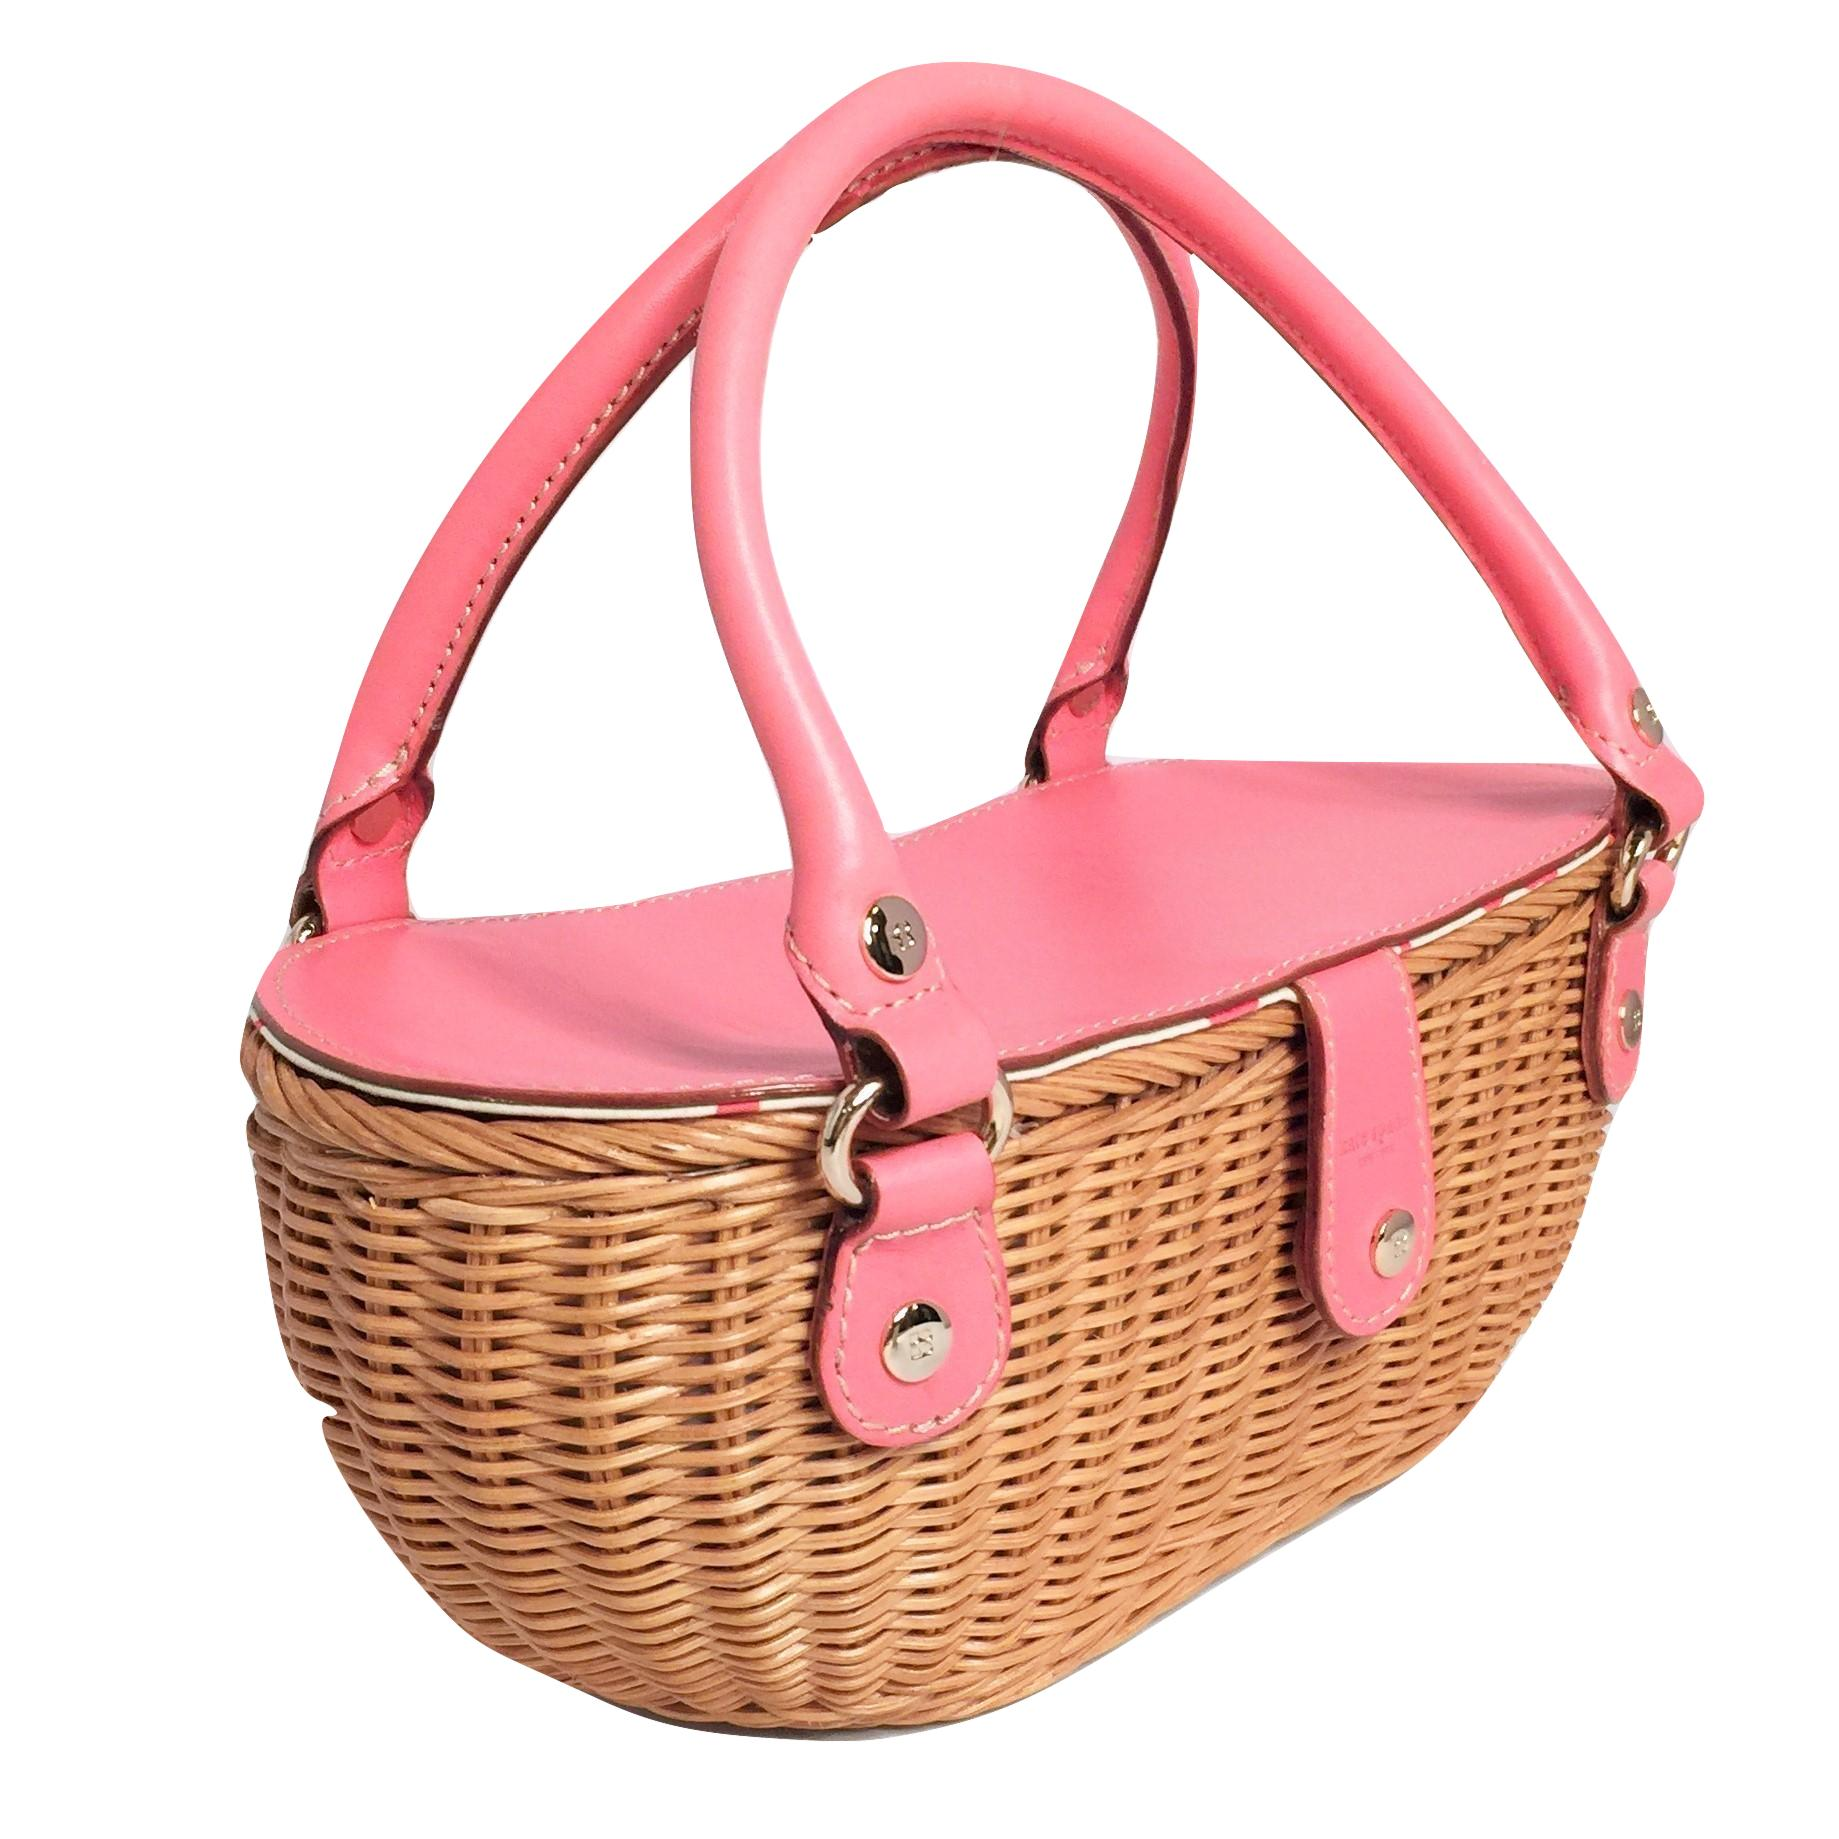 Kate Spade New York New Spring 2005 Collection Kate Spade Green Wicker Basket Bag kMMwrUR